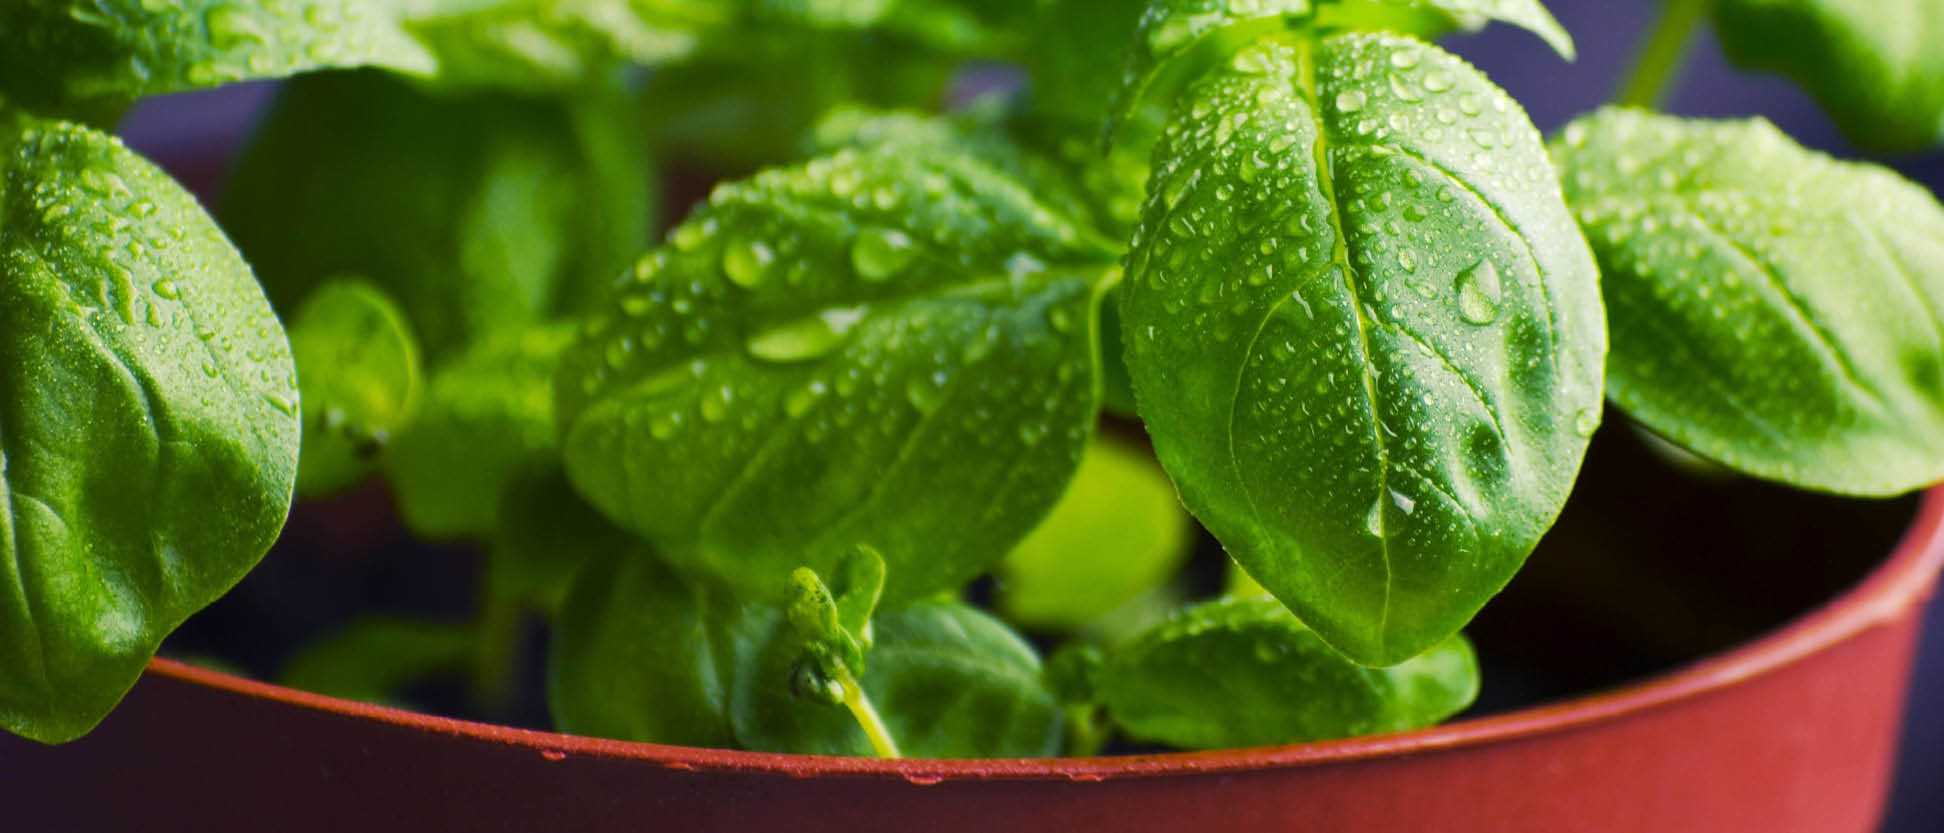 Close up photo of a sweet basil plant with dewdrops of water on the leaves.